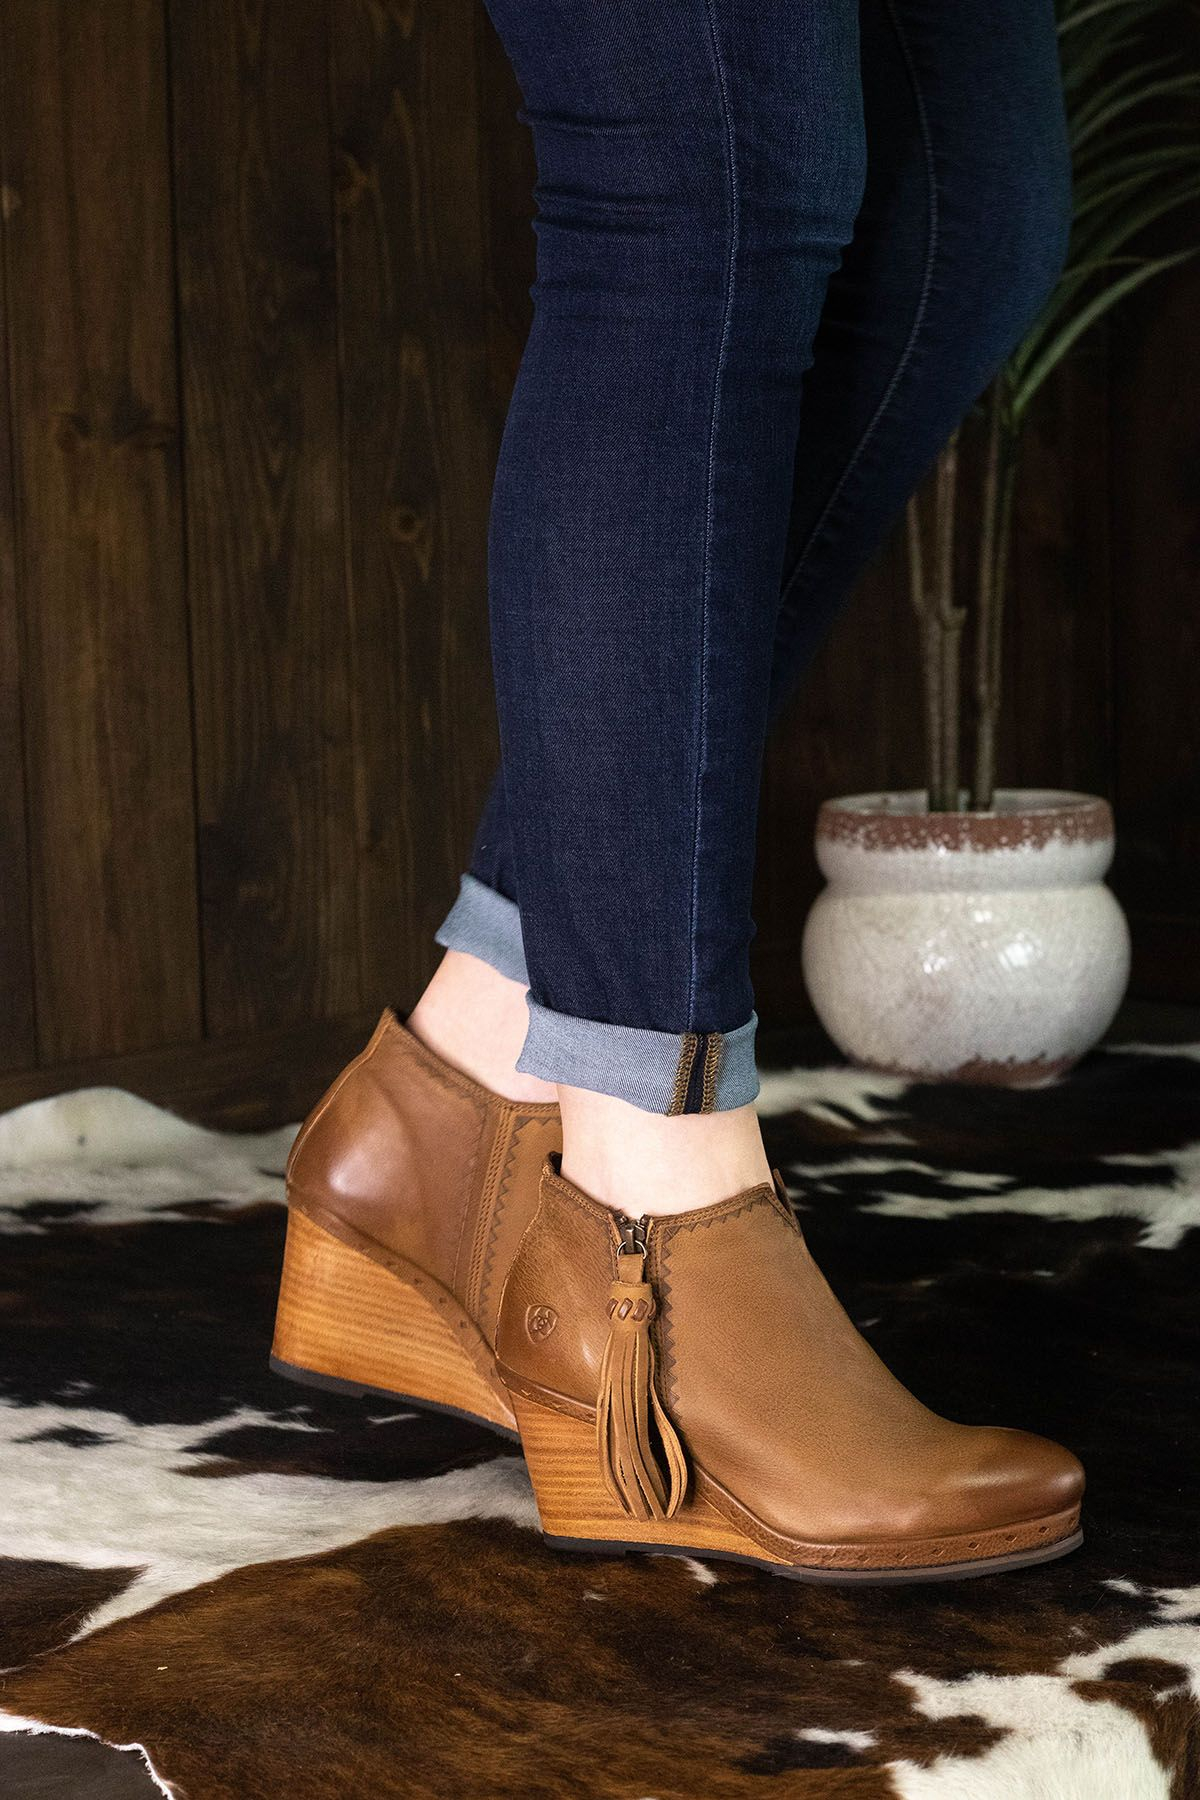 f19b25f56a3 Ariat Graceland Western Boot in Oxford Tan in 2019 | Boutique.Style ...